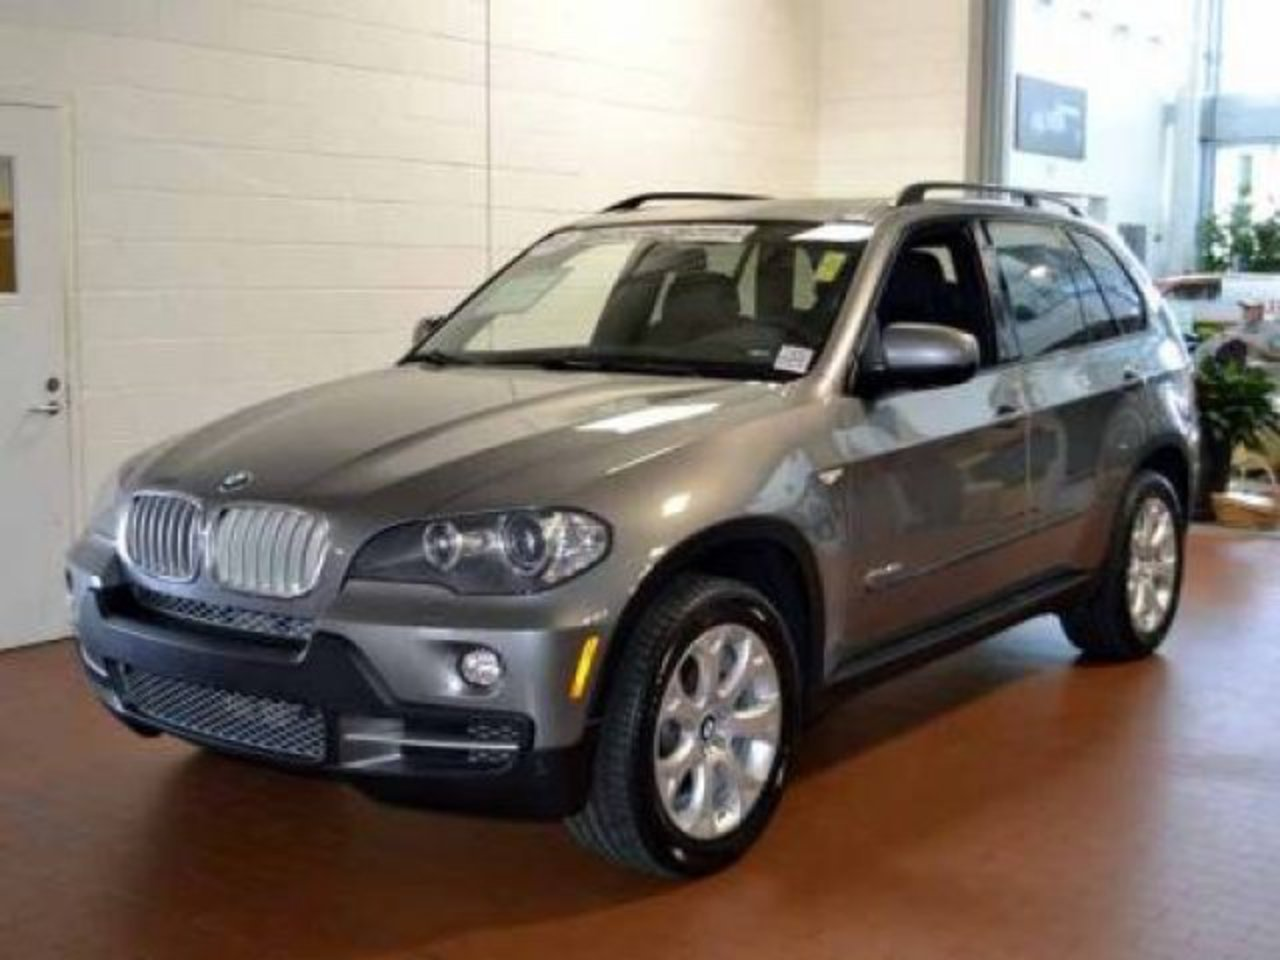 2010 BMW X5 48i Space Gray Metallic. showing 1 of 15